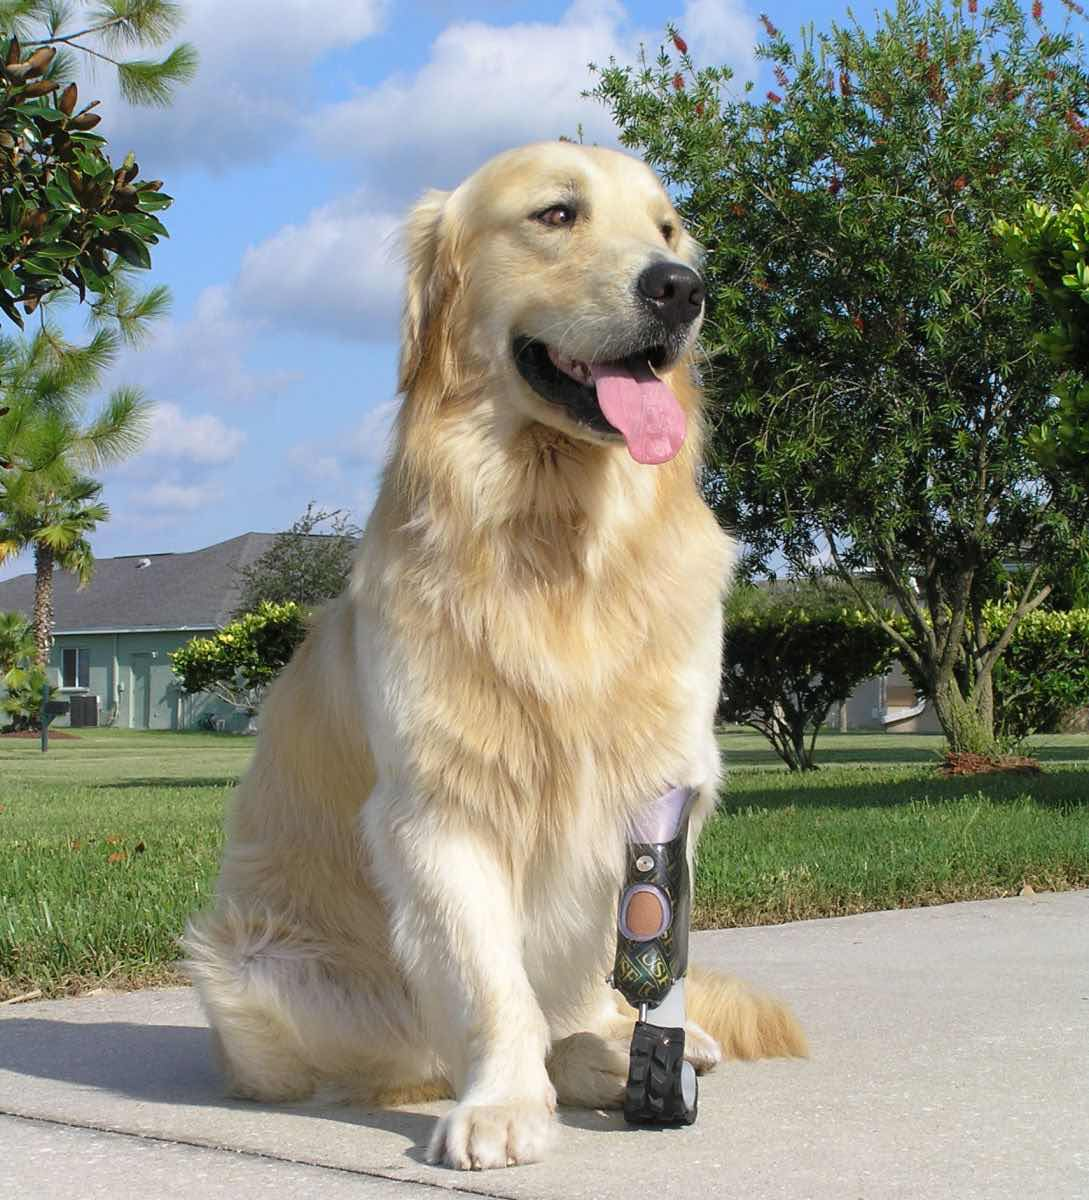 images/Dog%20With%20Prosthetic%20Leg.jpg